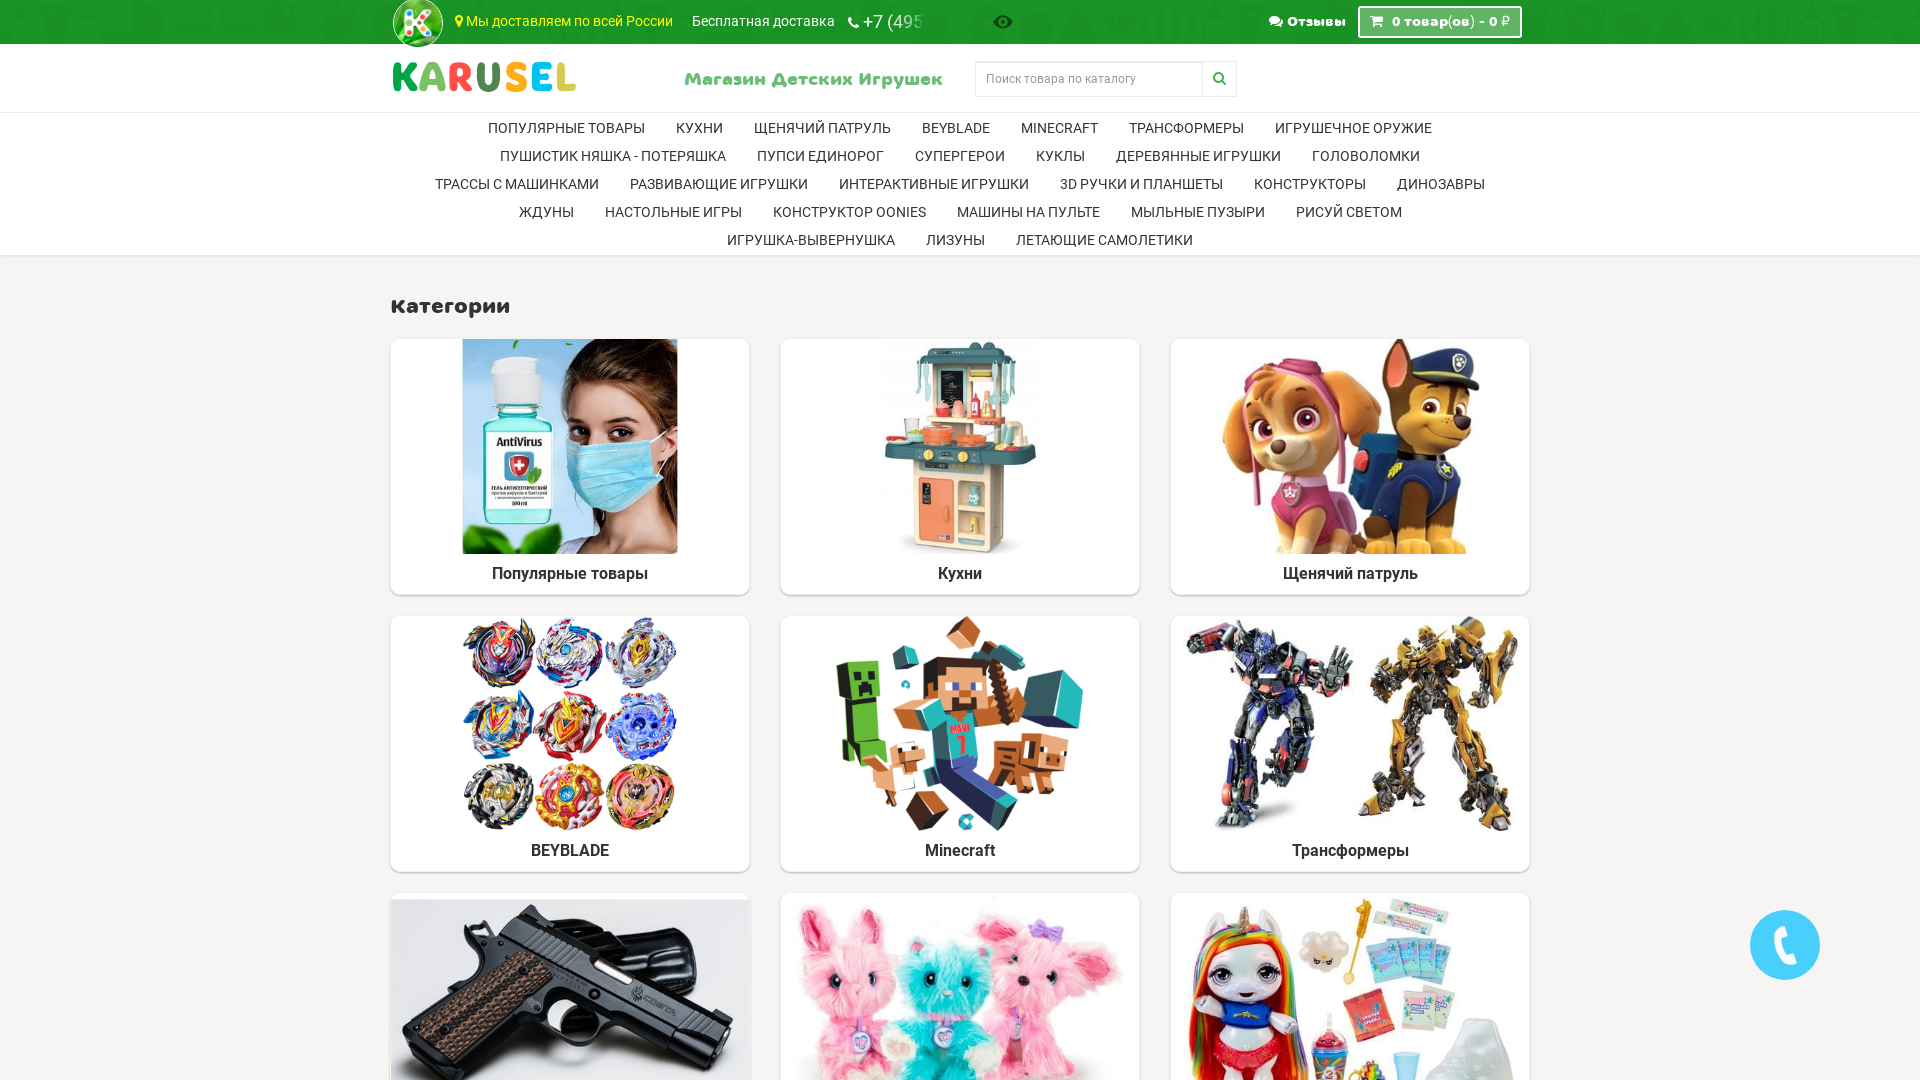 Karusel-shop website